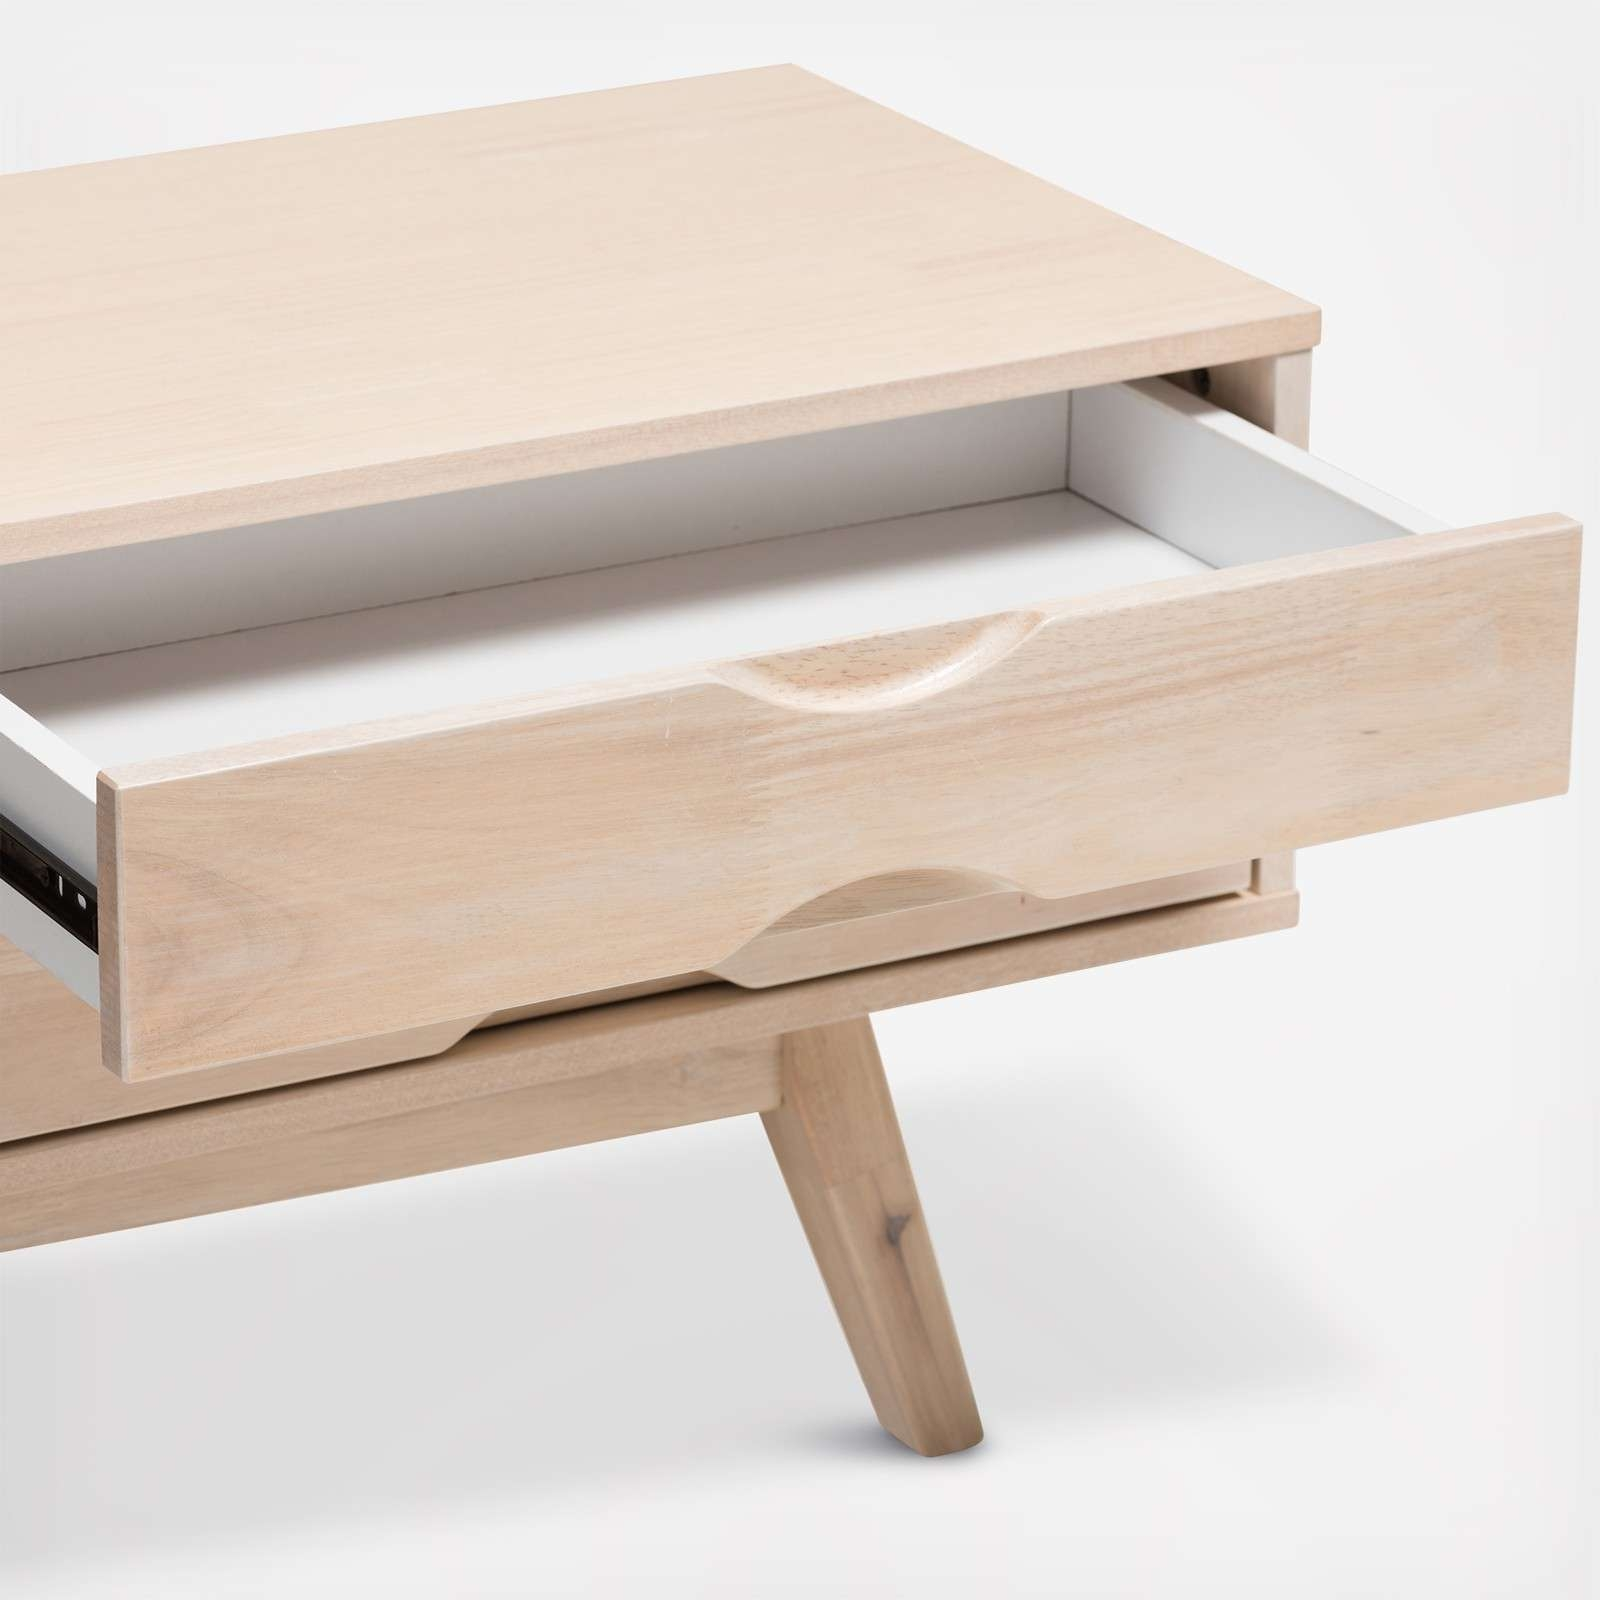 Scandinavian Tv Stand | Zola Within Scandinavian Tv Stands (View 12 of 15)